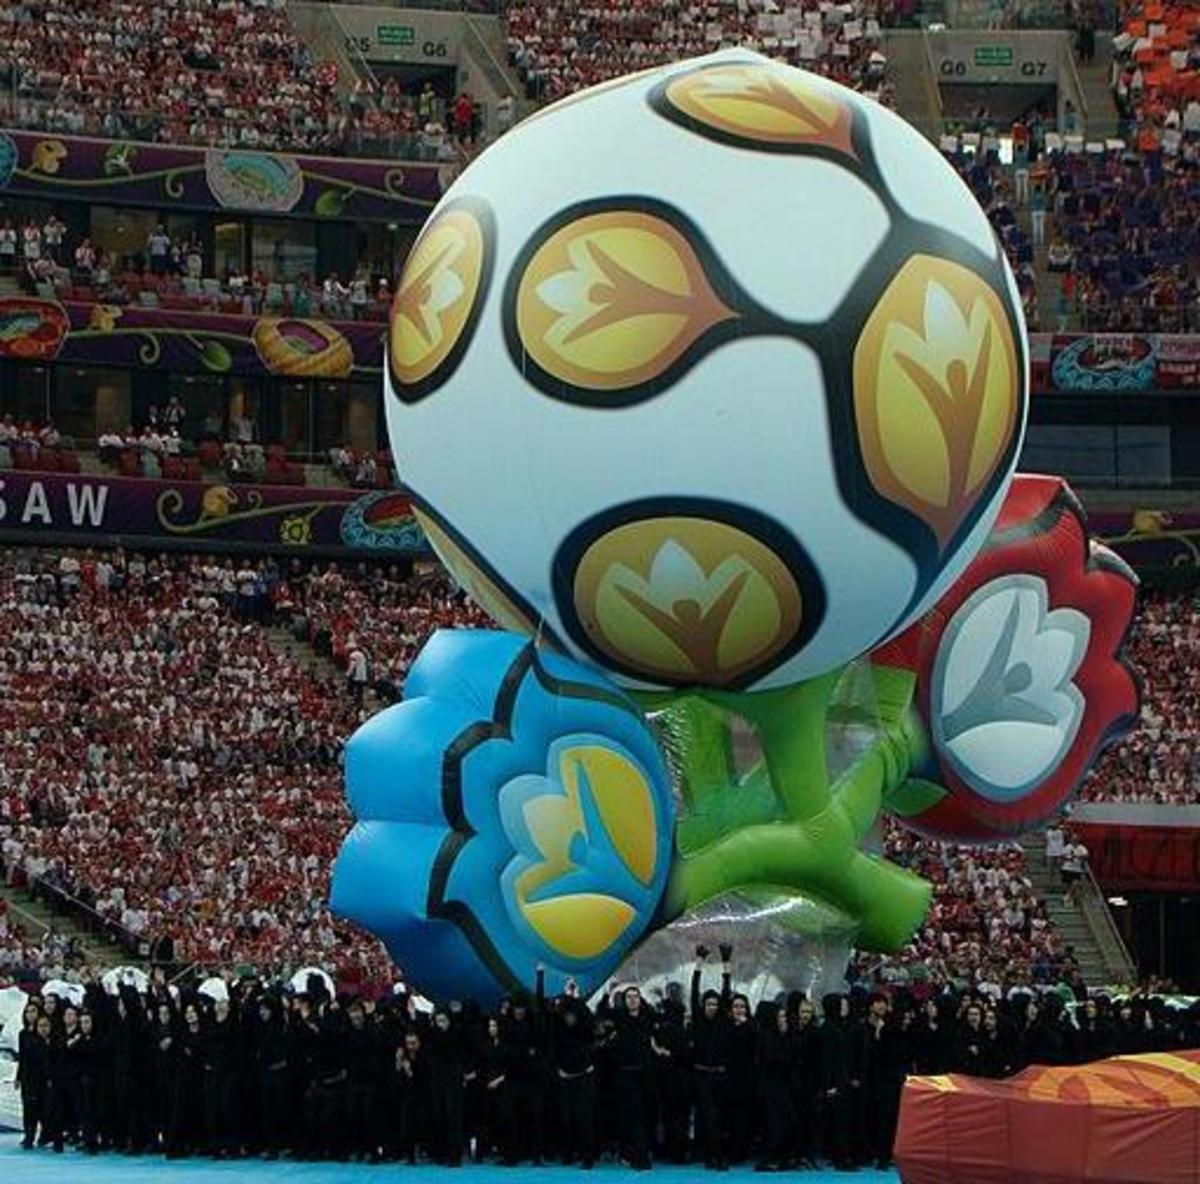 The Euro 2012 logo at the opening ceremony.